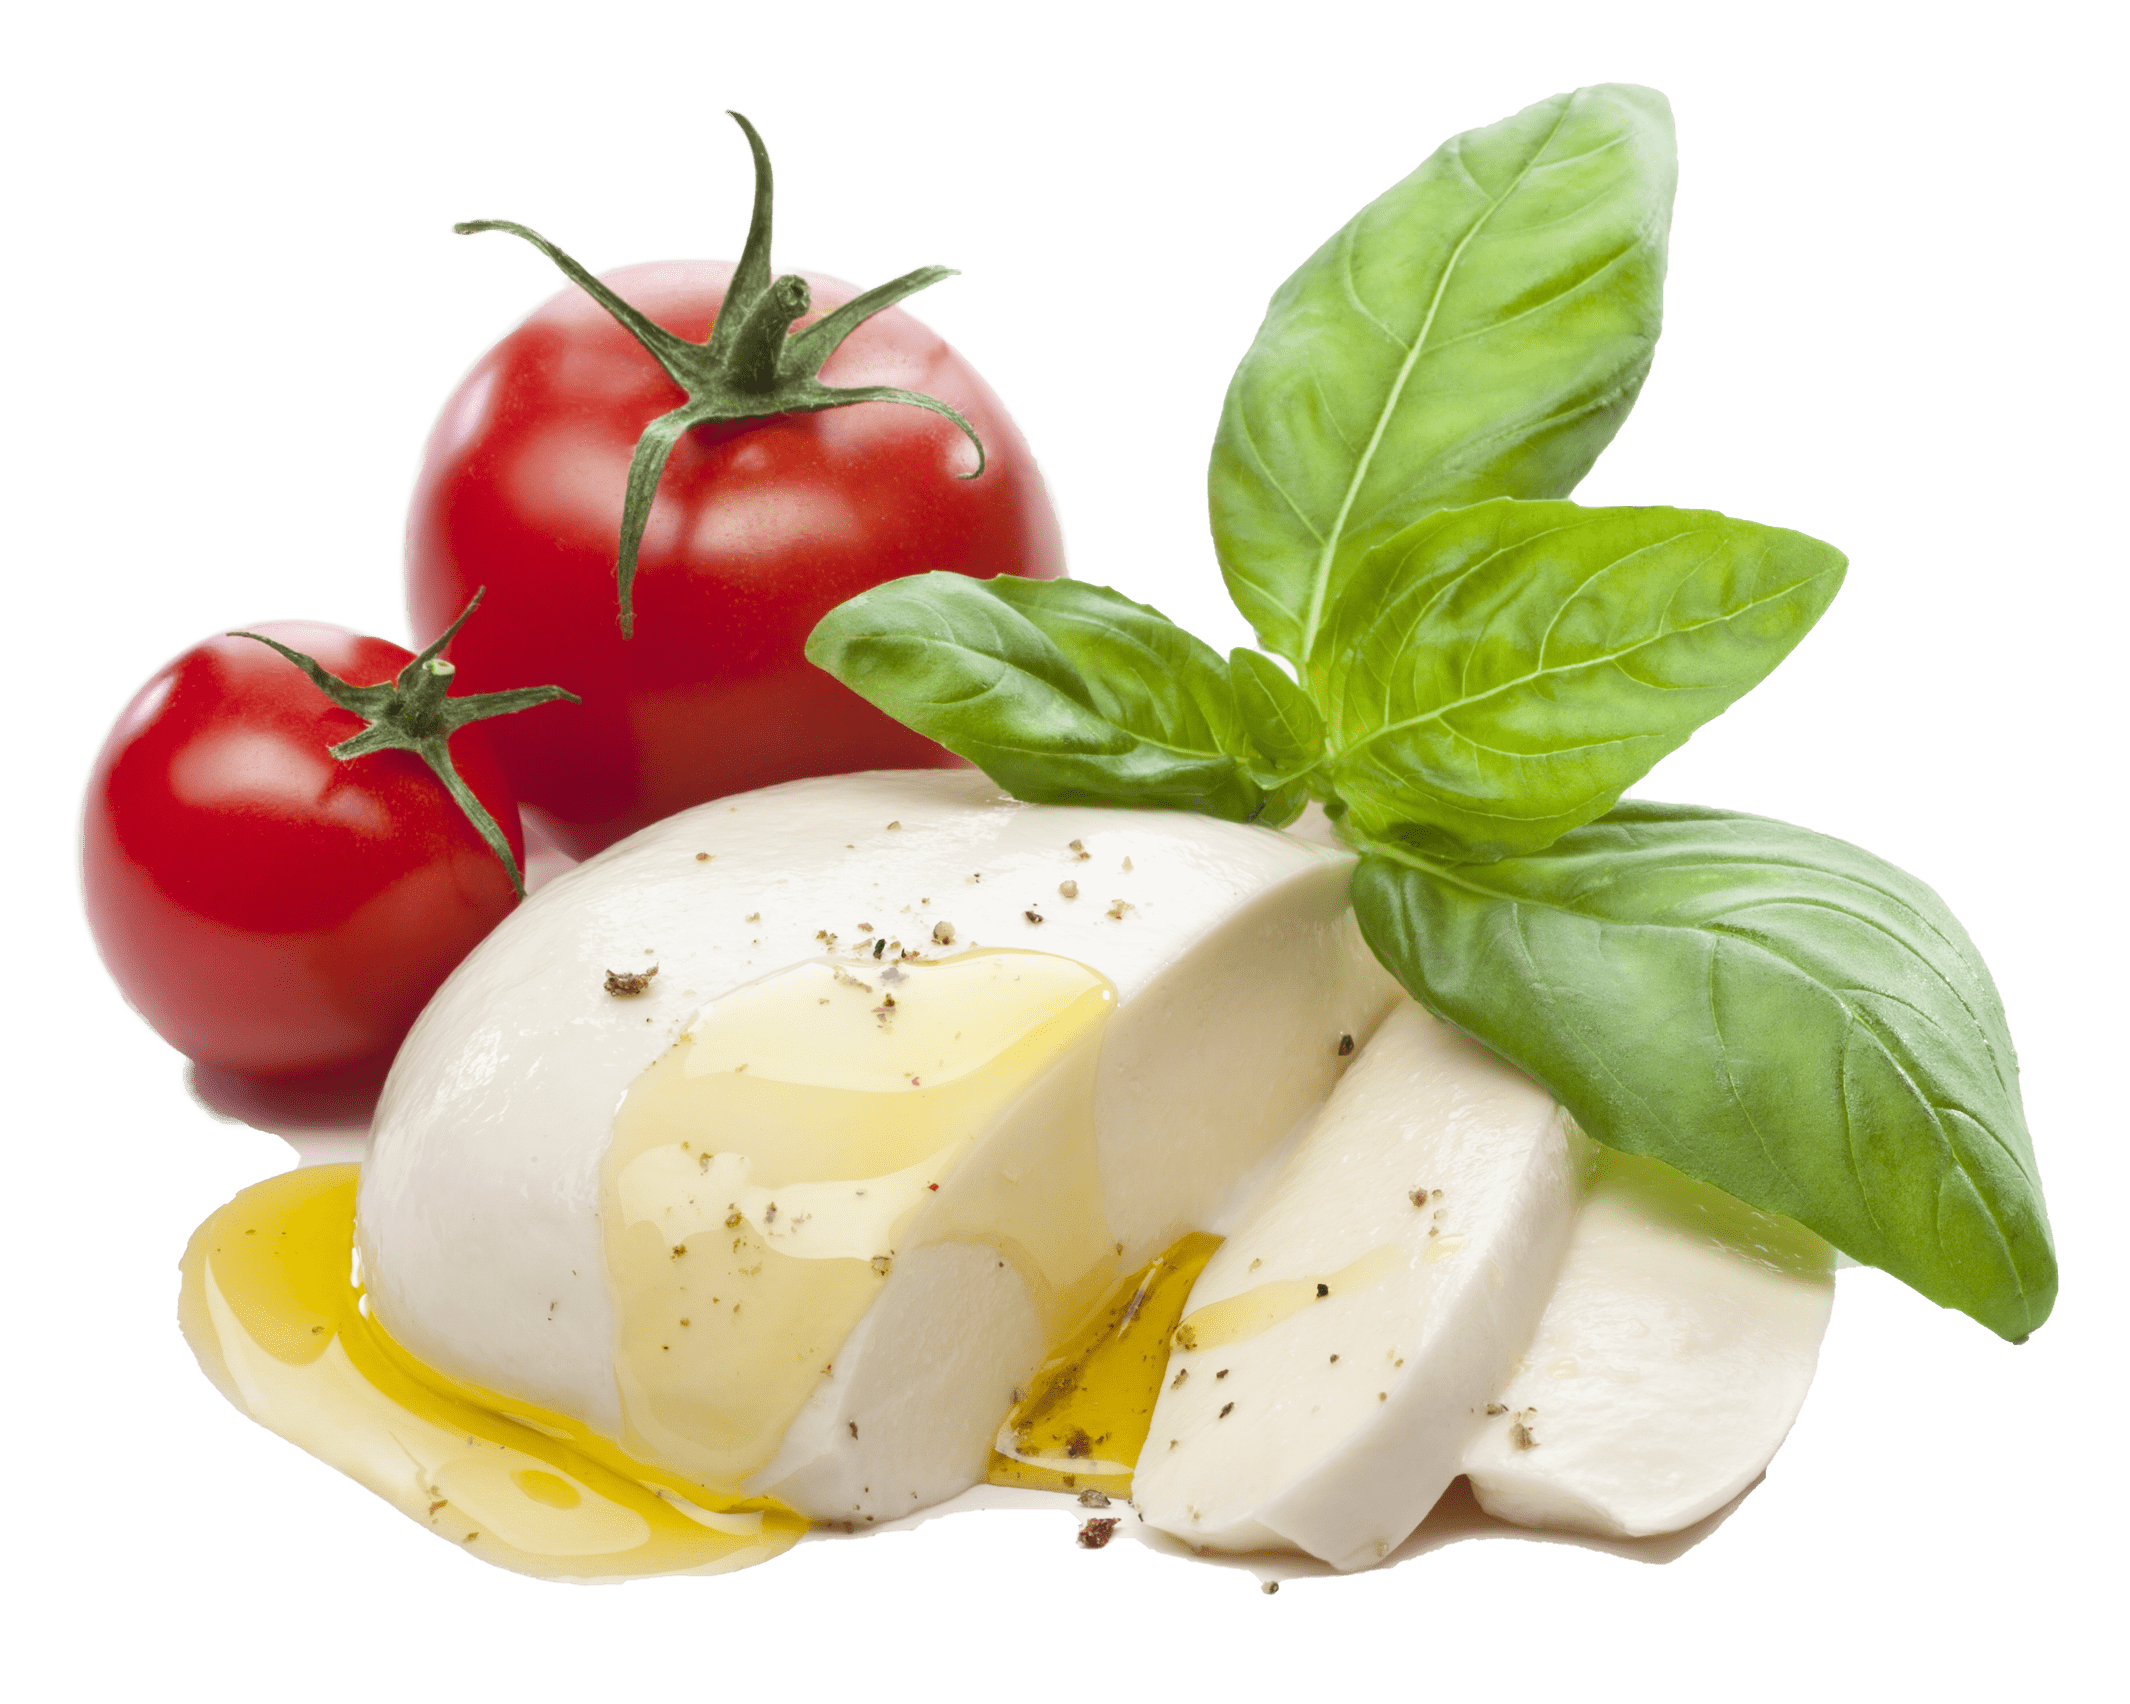 Fresh mozzarella cheese with olive oil, pepper, tomatoes and basil leaves